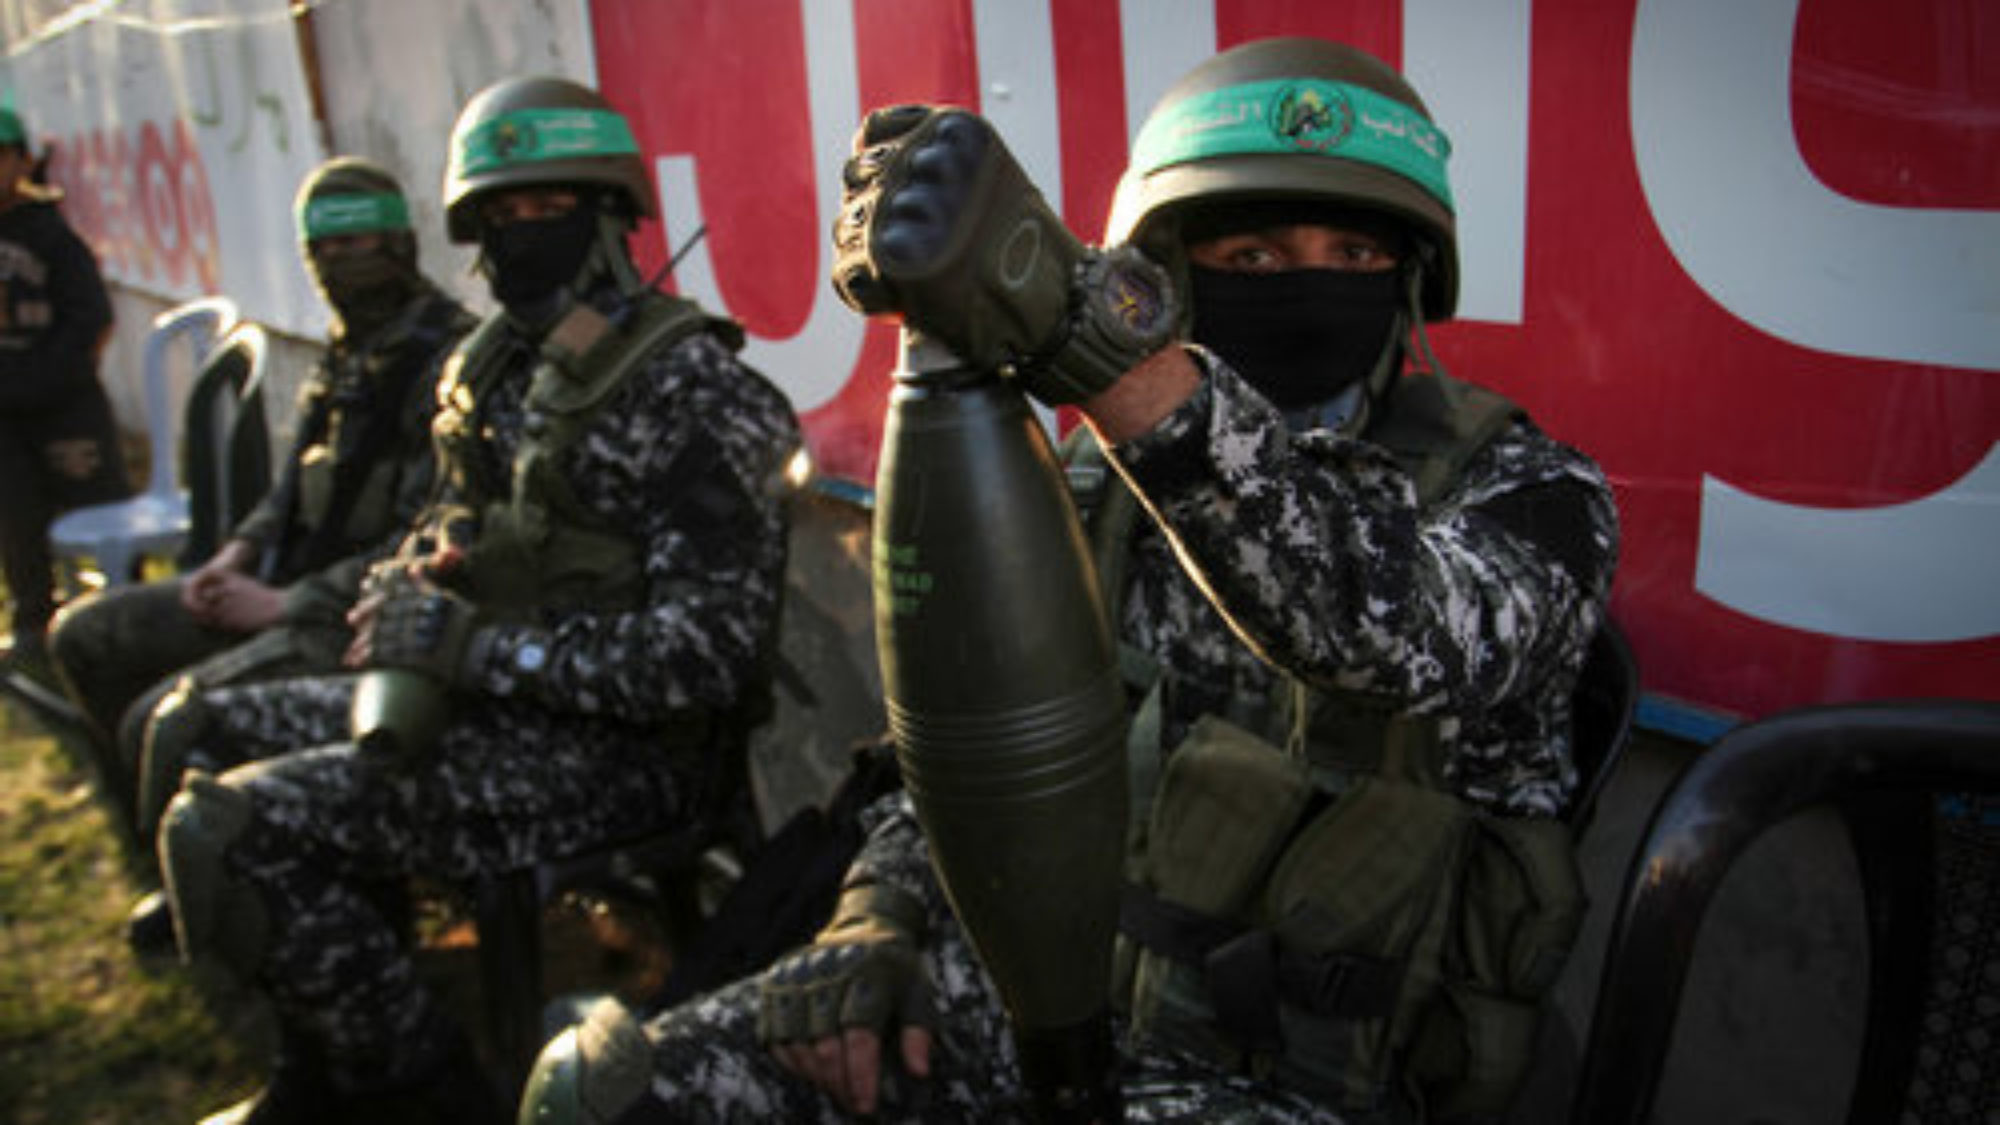 Hamas members take part in a rally marking the Palestinian terror group's 29th anniversary Dec.16, 2016, in Gaza. Credit: Abed Rahim Khatib/Flash90.